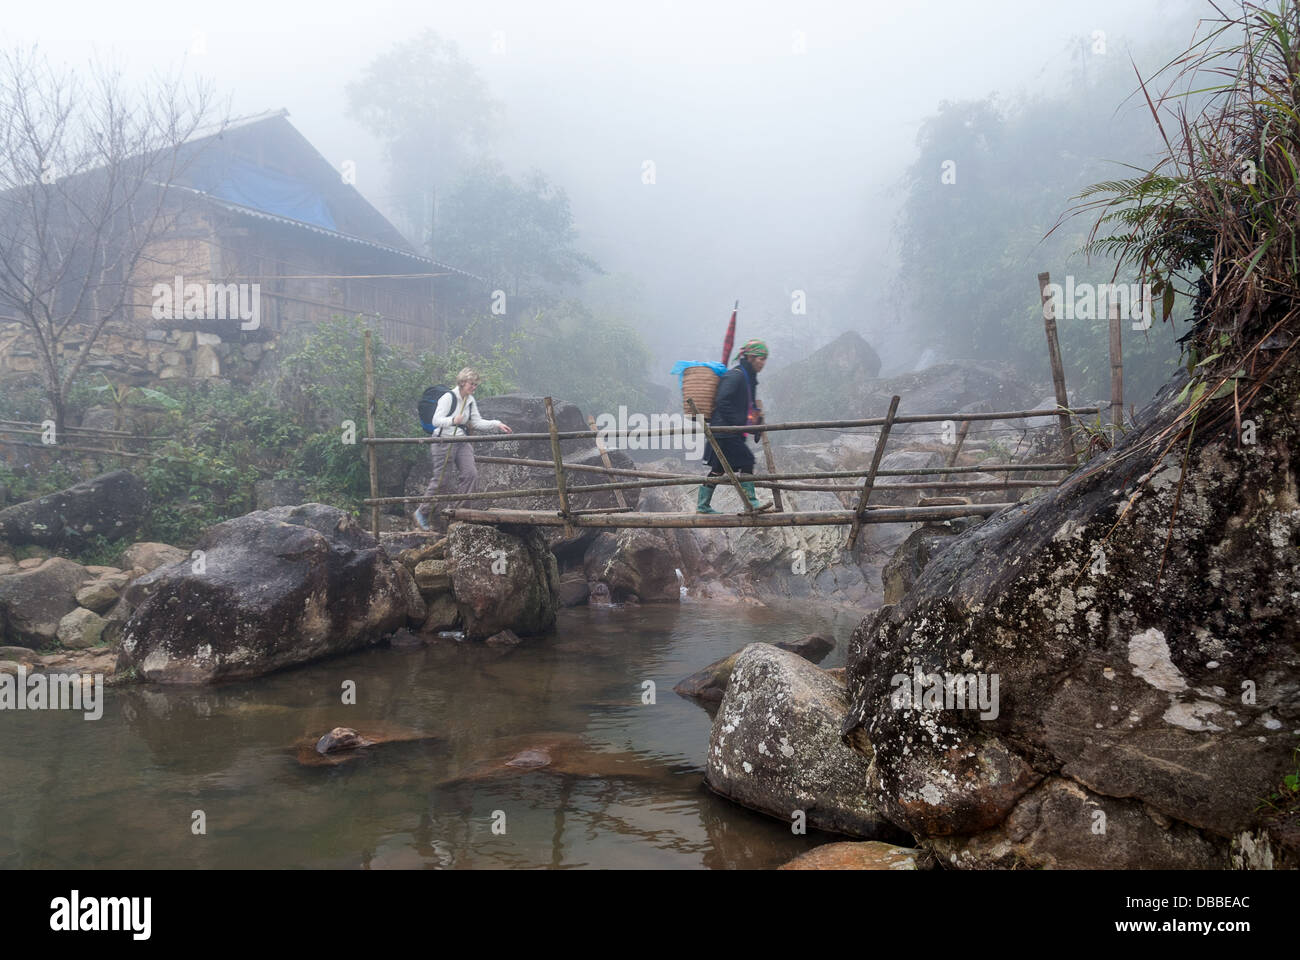 An unidentified tourist and her guide hike in the mist on January 18, 2008 in Sapa District, Vietnam - Stock Image